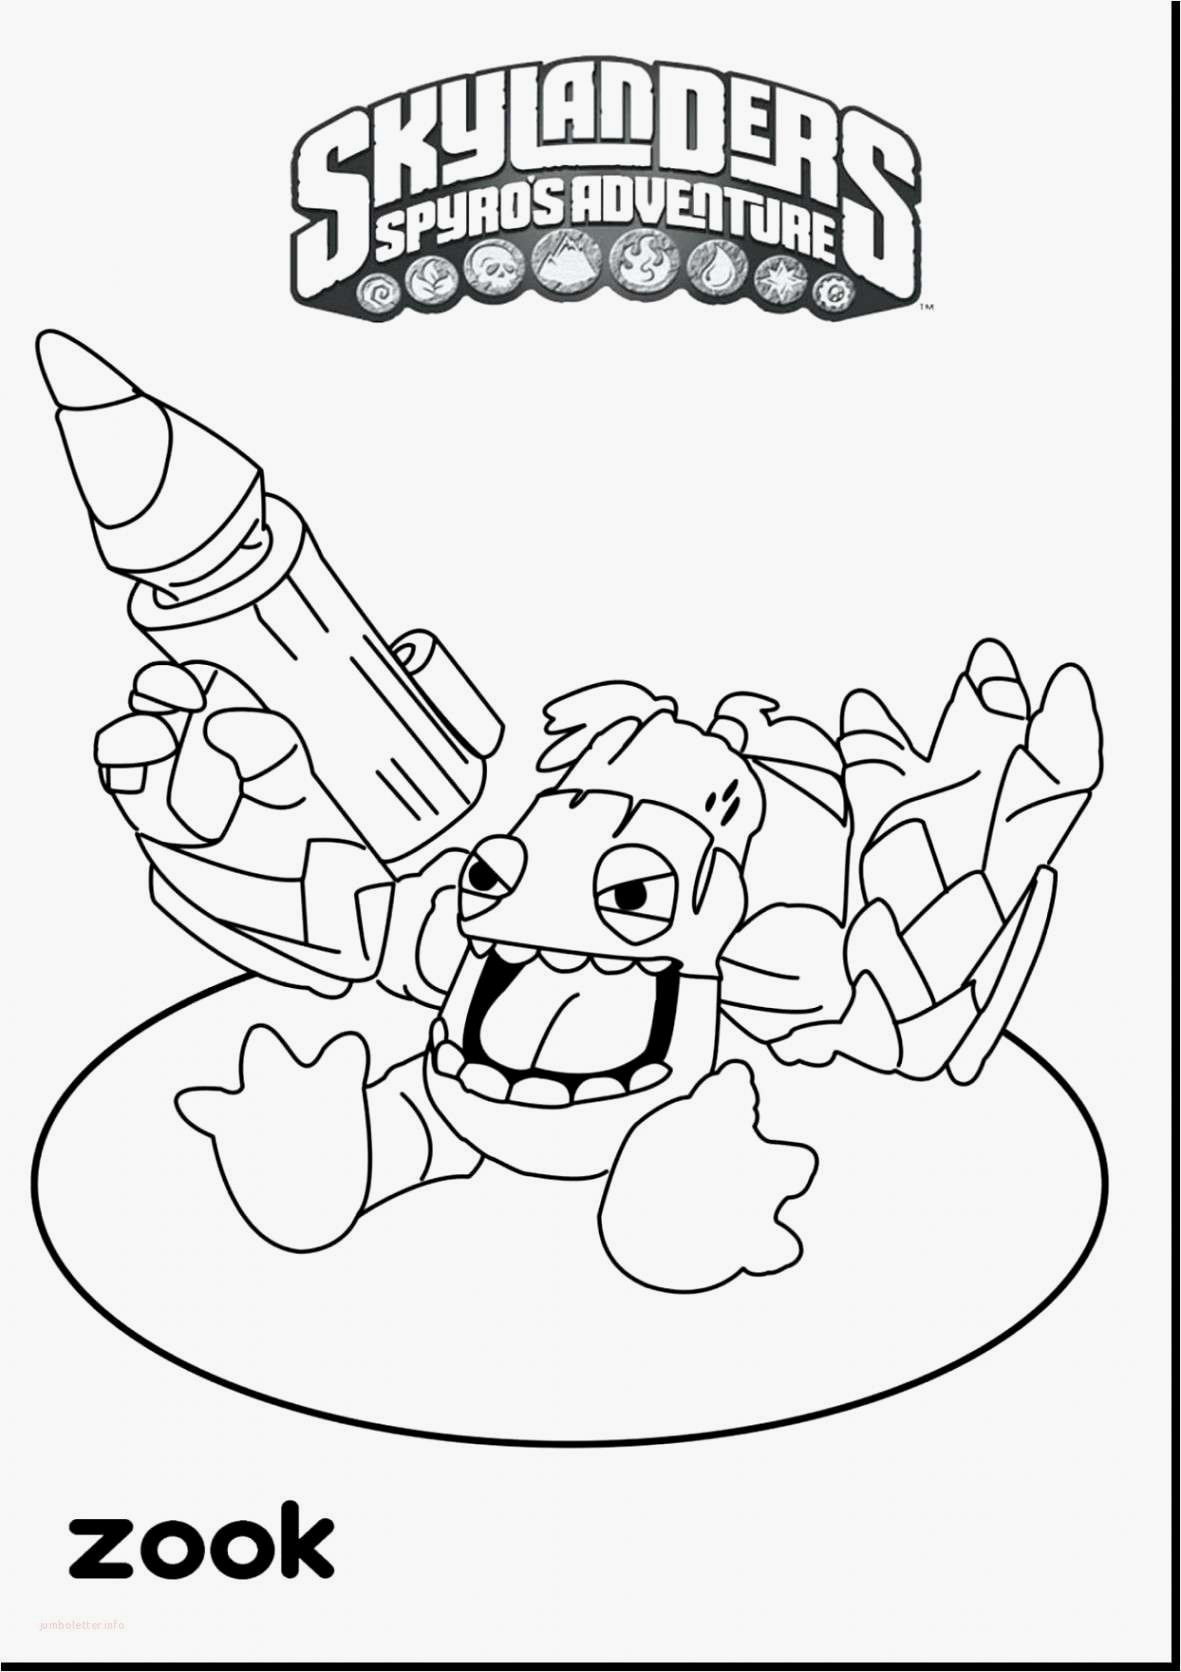 Coloring Pages Of Stars  Download 12q - Save it to your computer